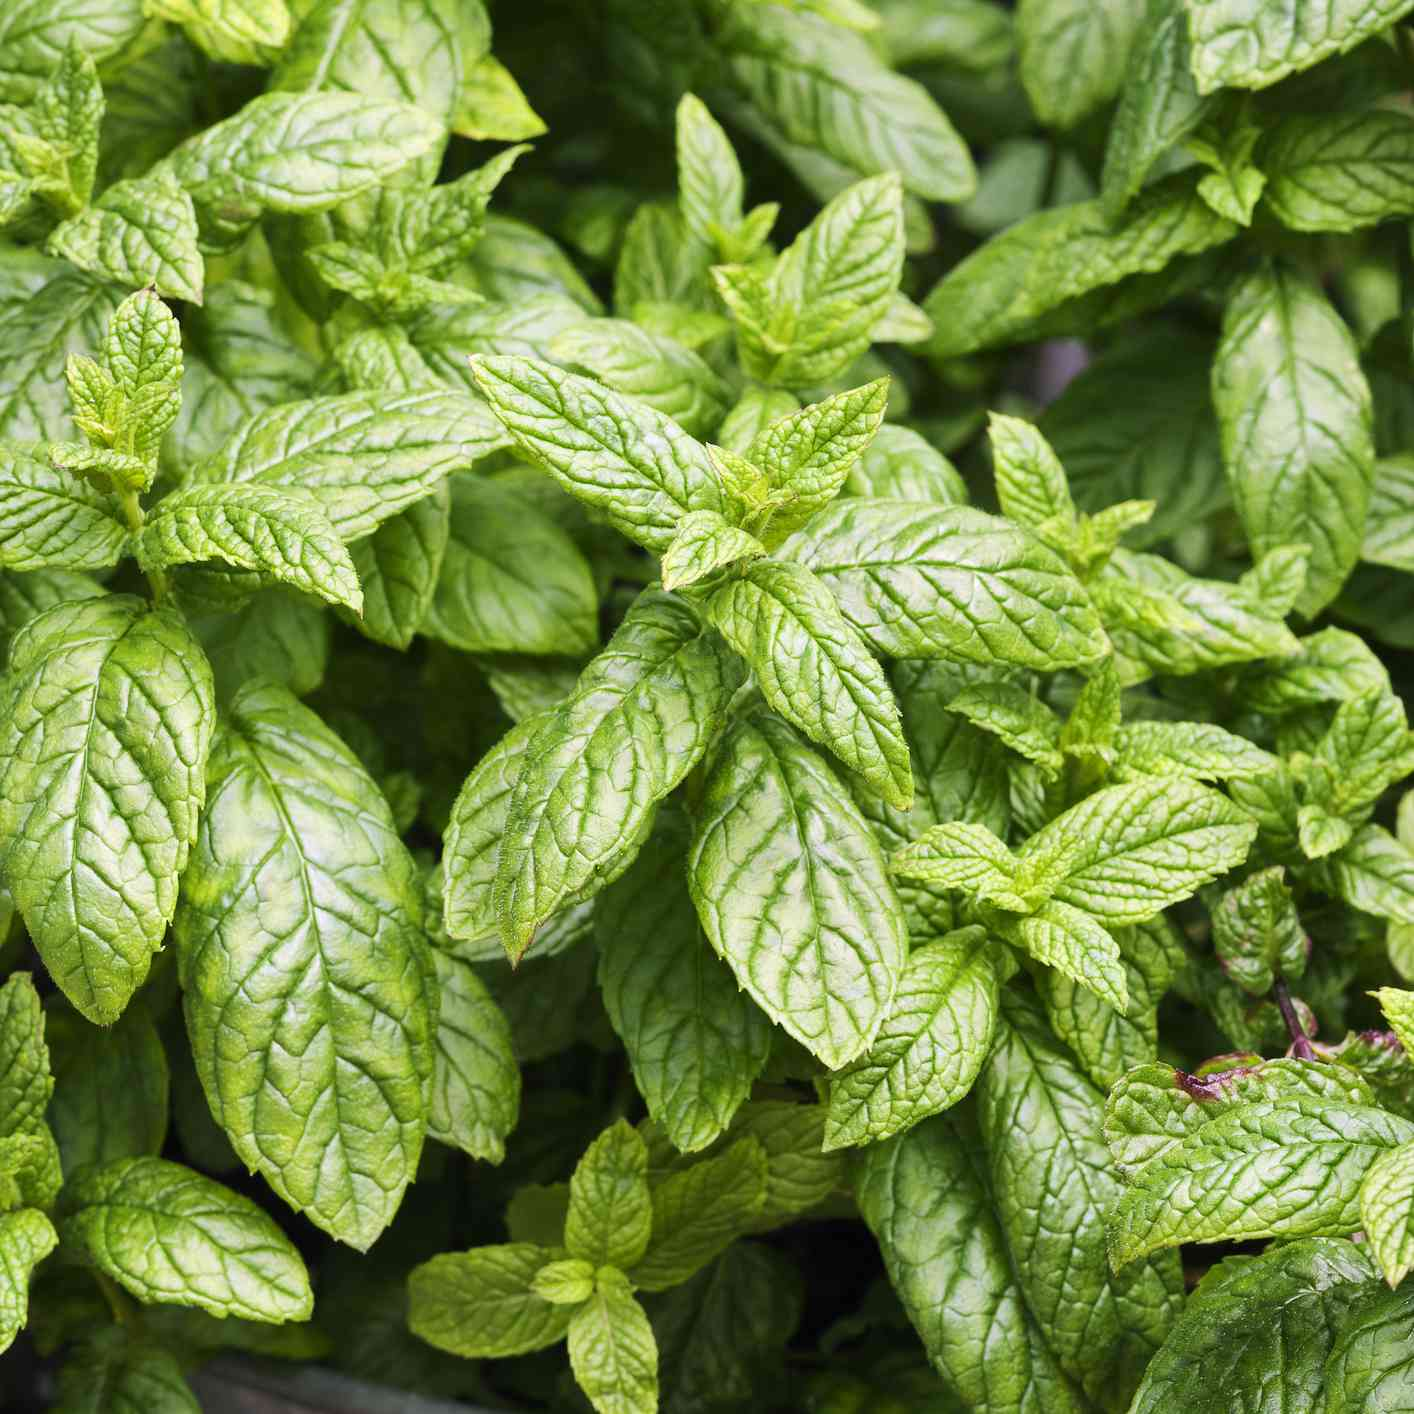 close-up of peppermint plant growing in metal garden pot